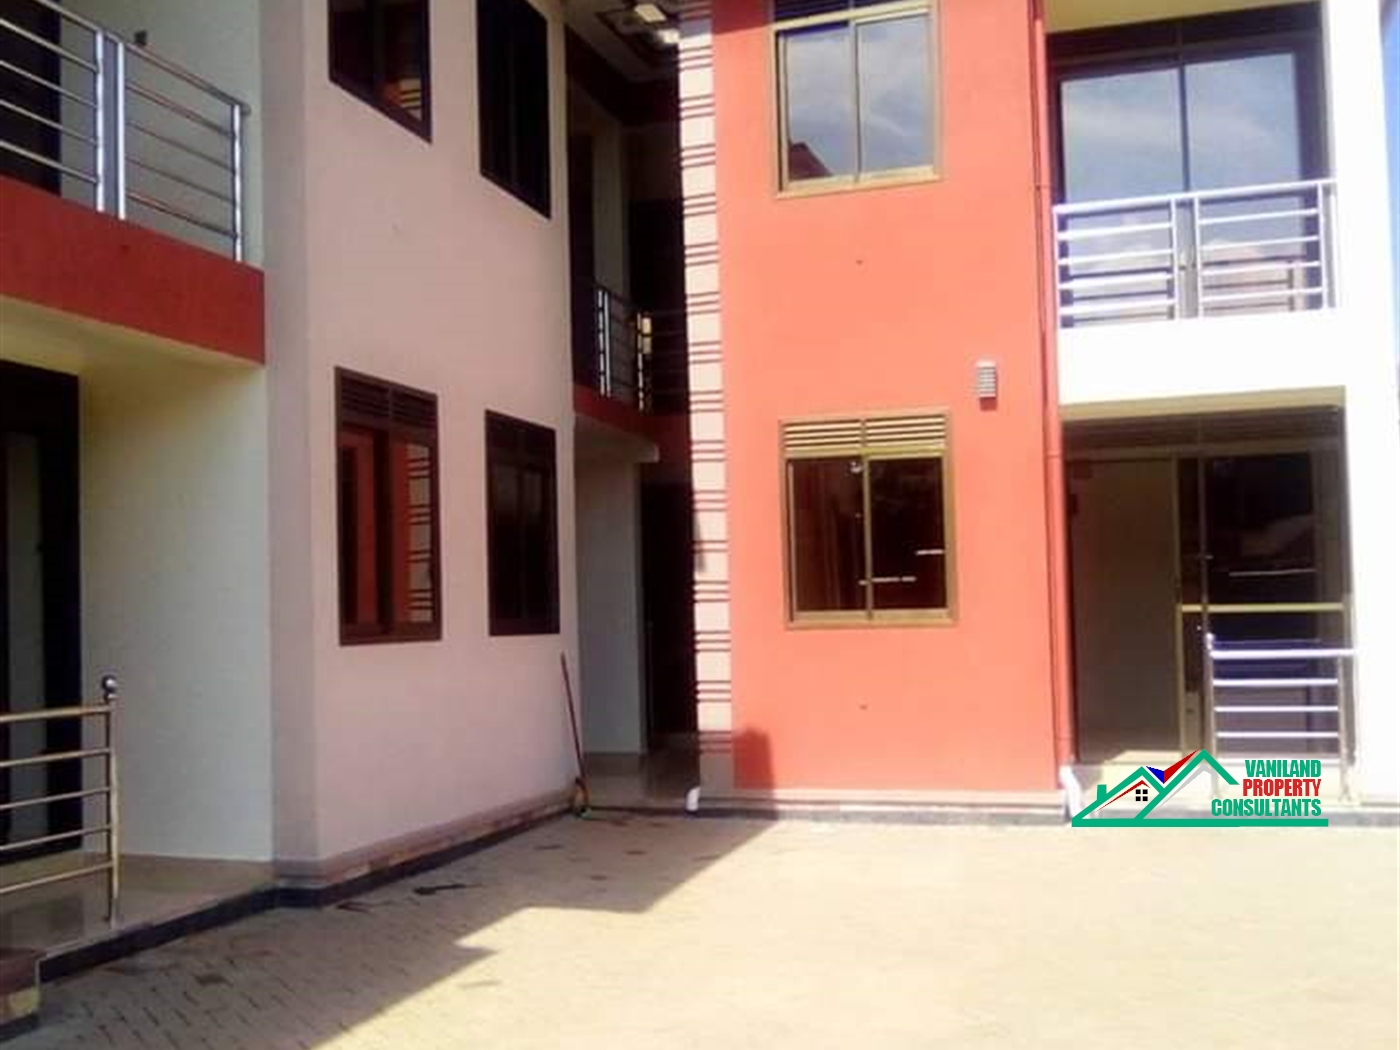 Apartment for rent in Kisasi Kampala